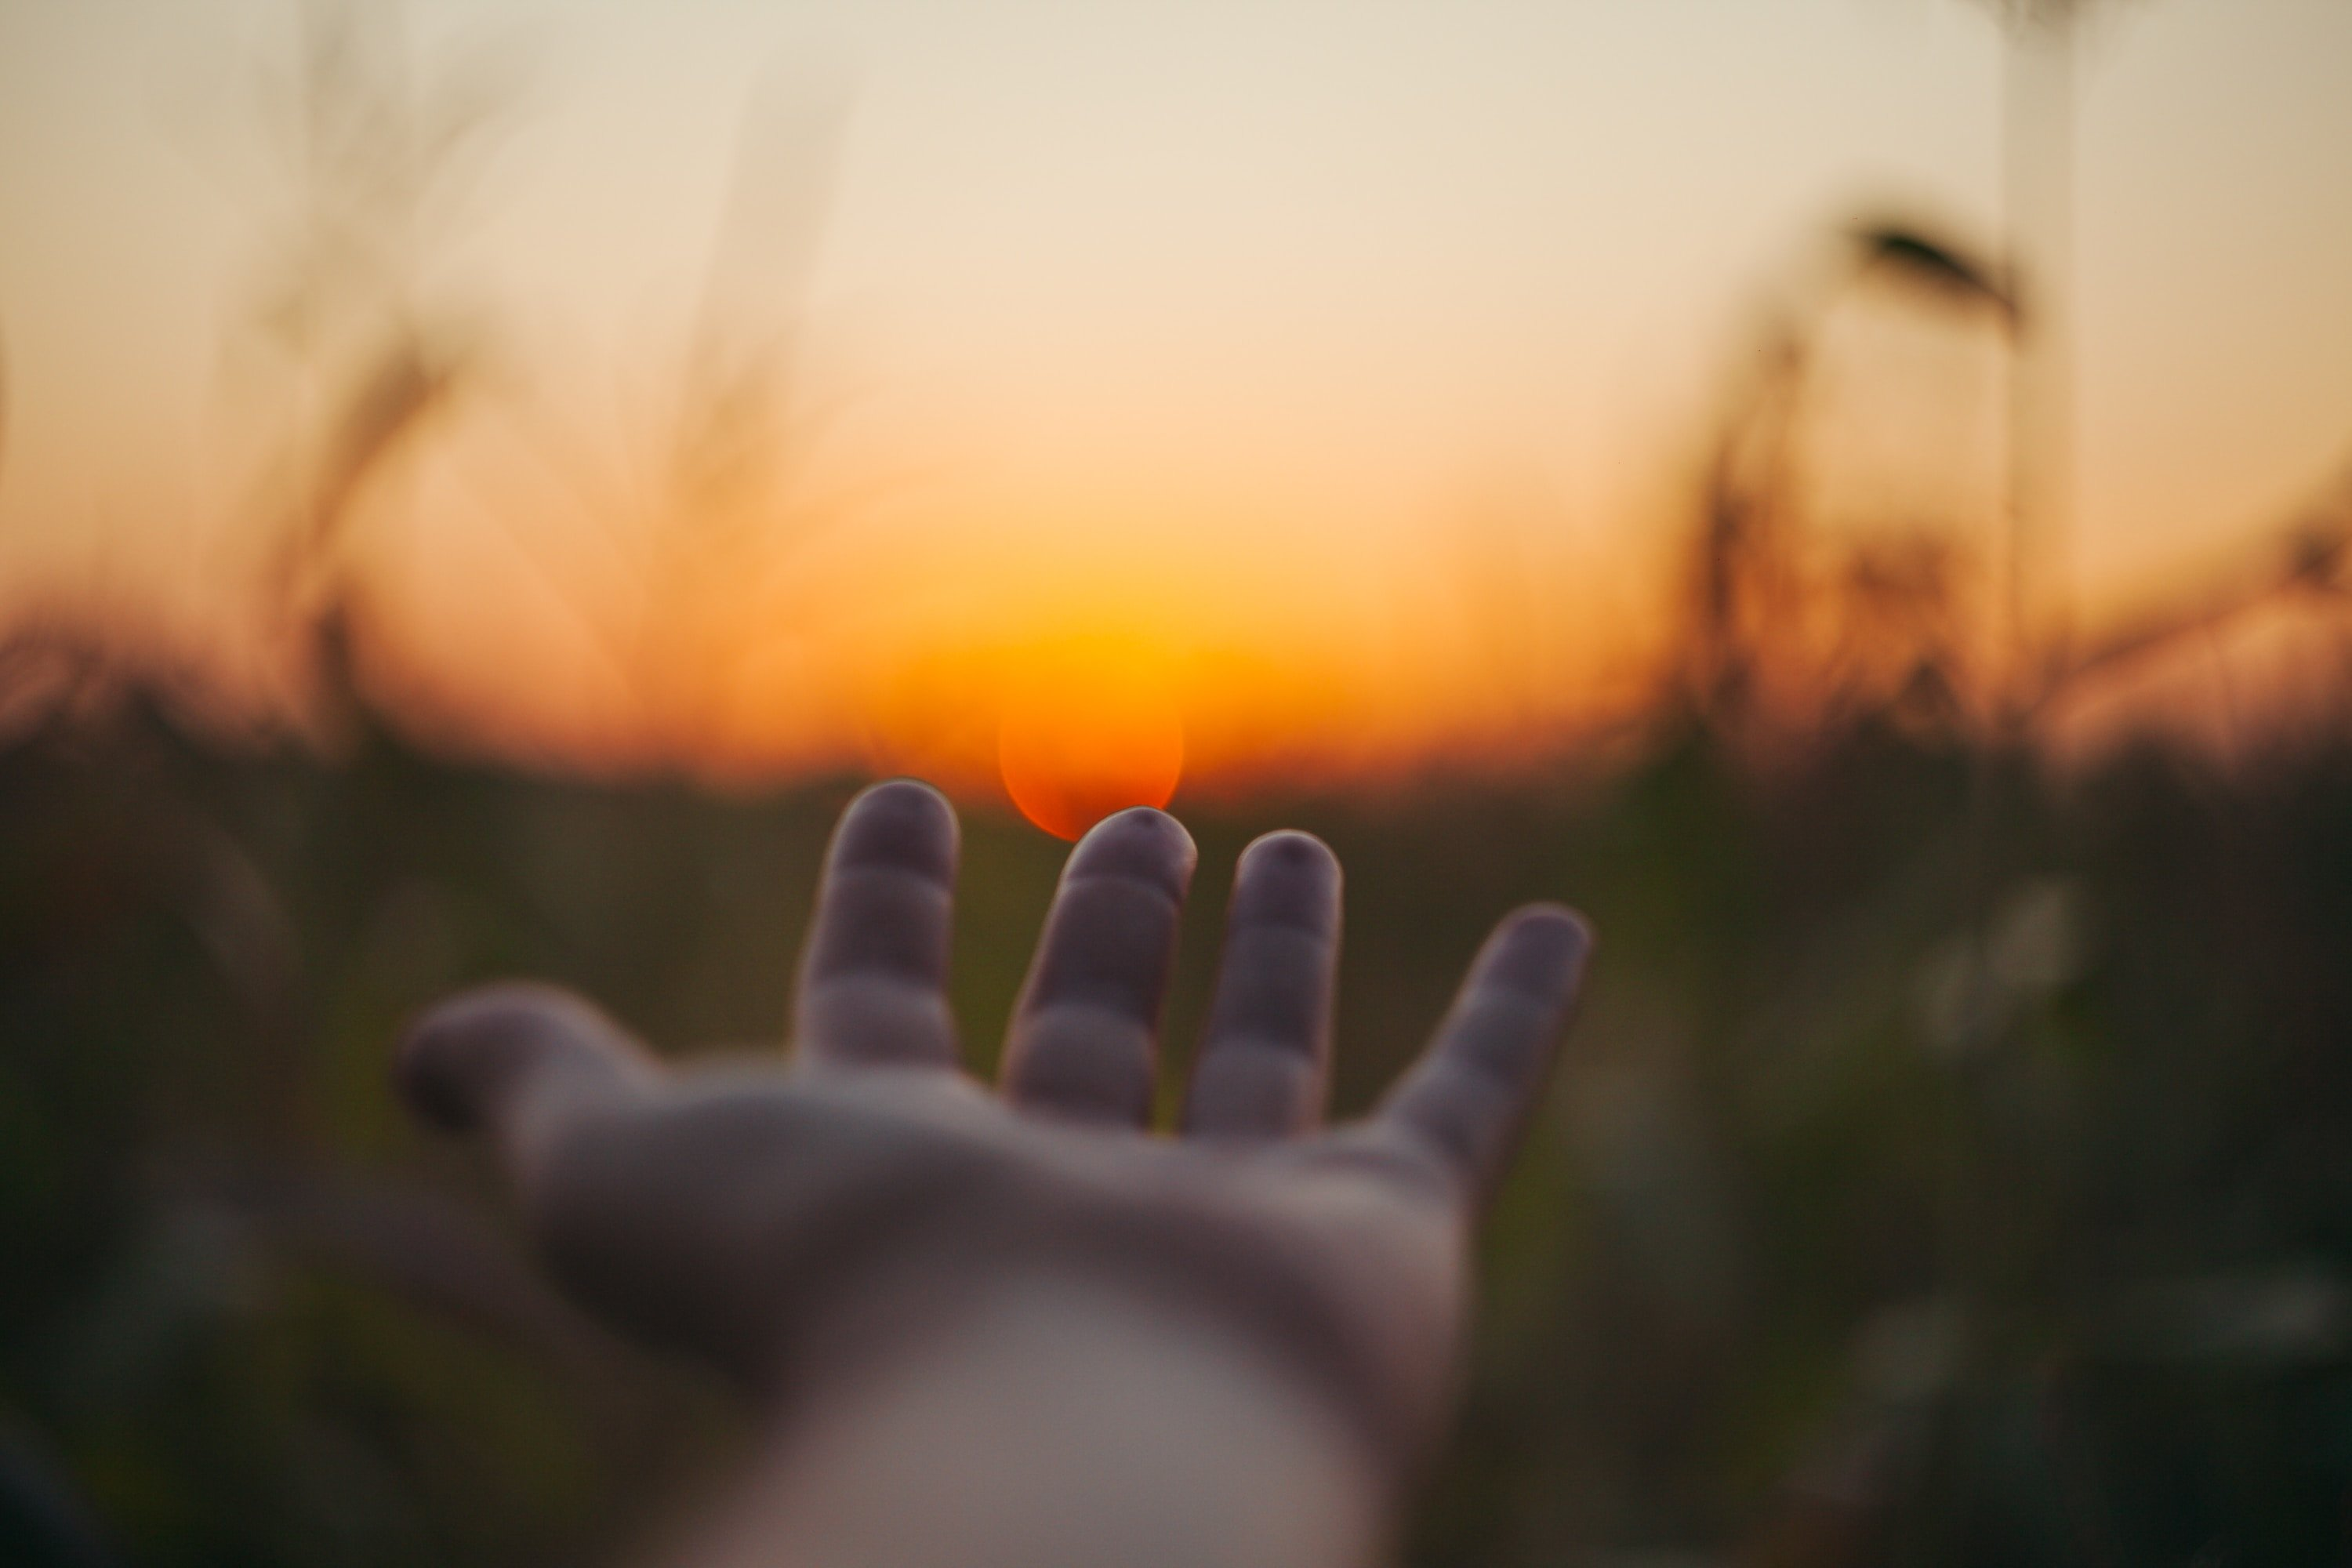 Upraised hand, sunset in background